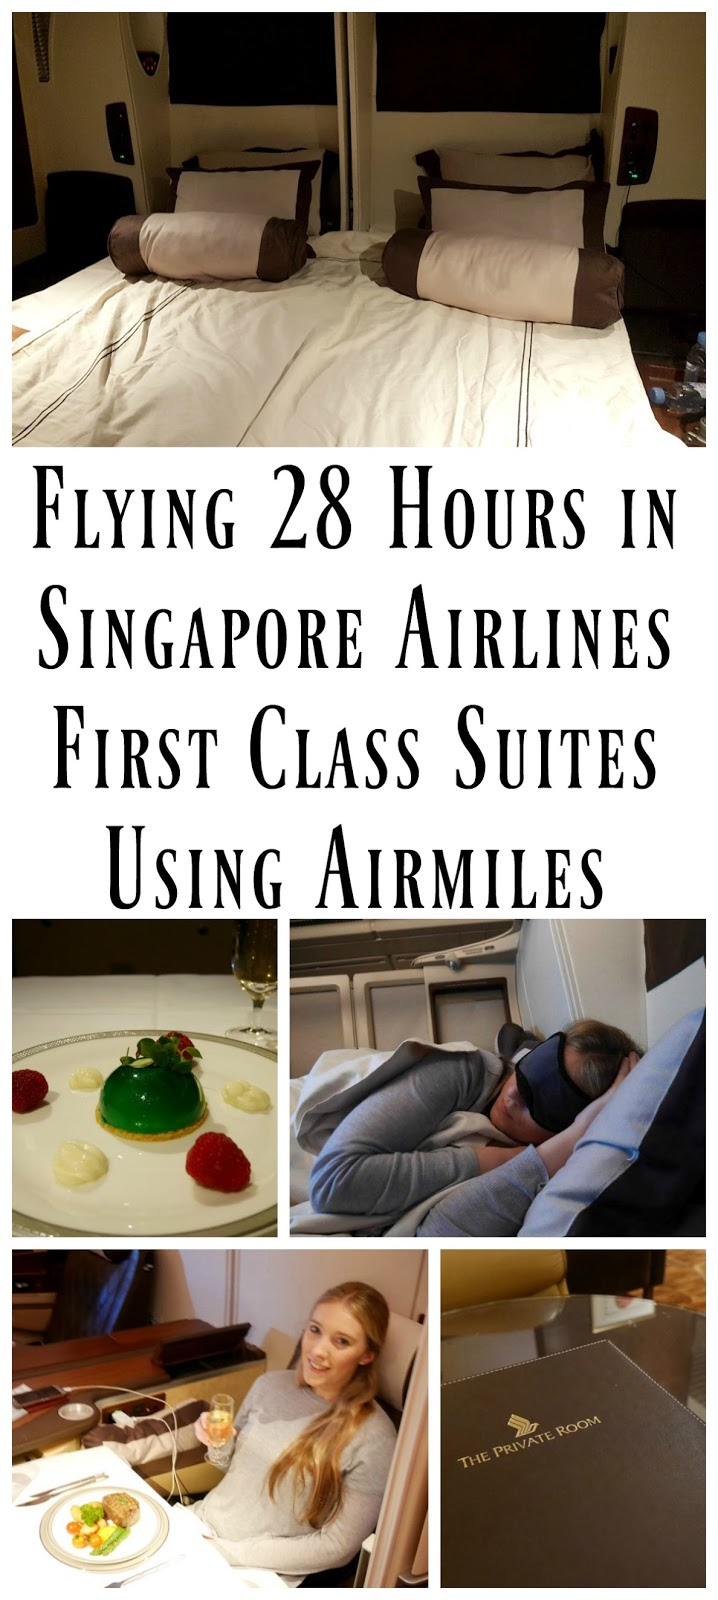 Find out just how insane my first experience in First Class was! I flew from Sydney Australia to NYC in Singapore Airline's First Class Suites - and even slept in a double bed in the sky!!